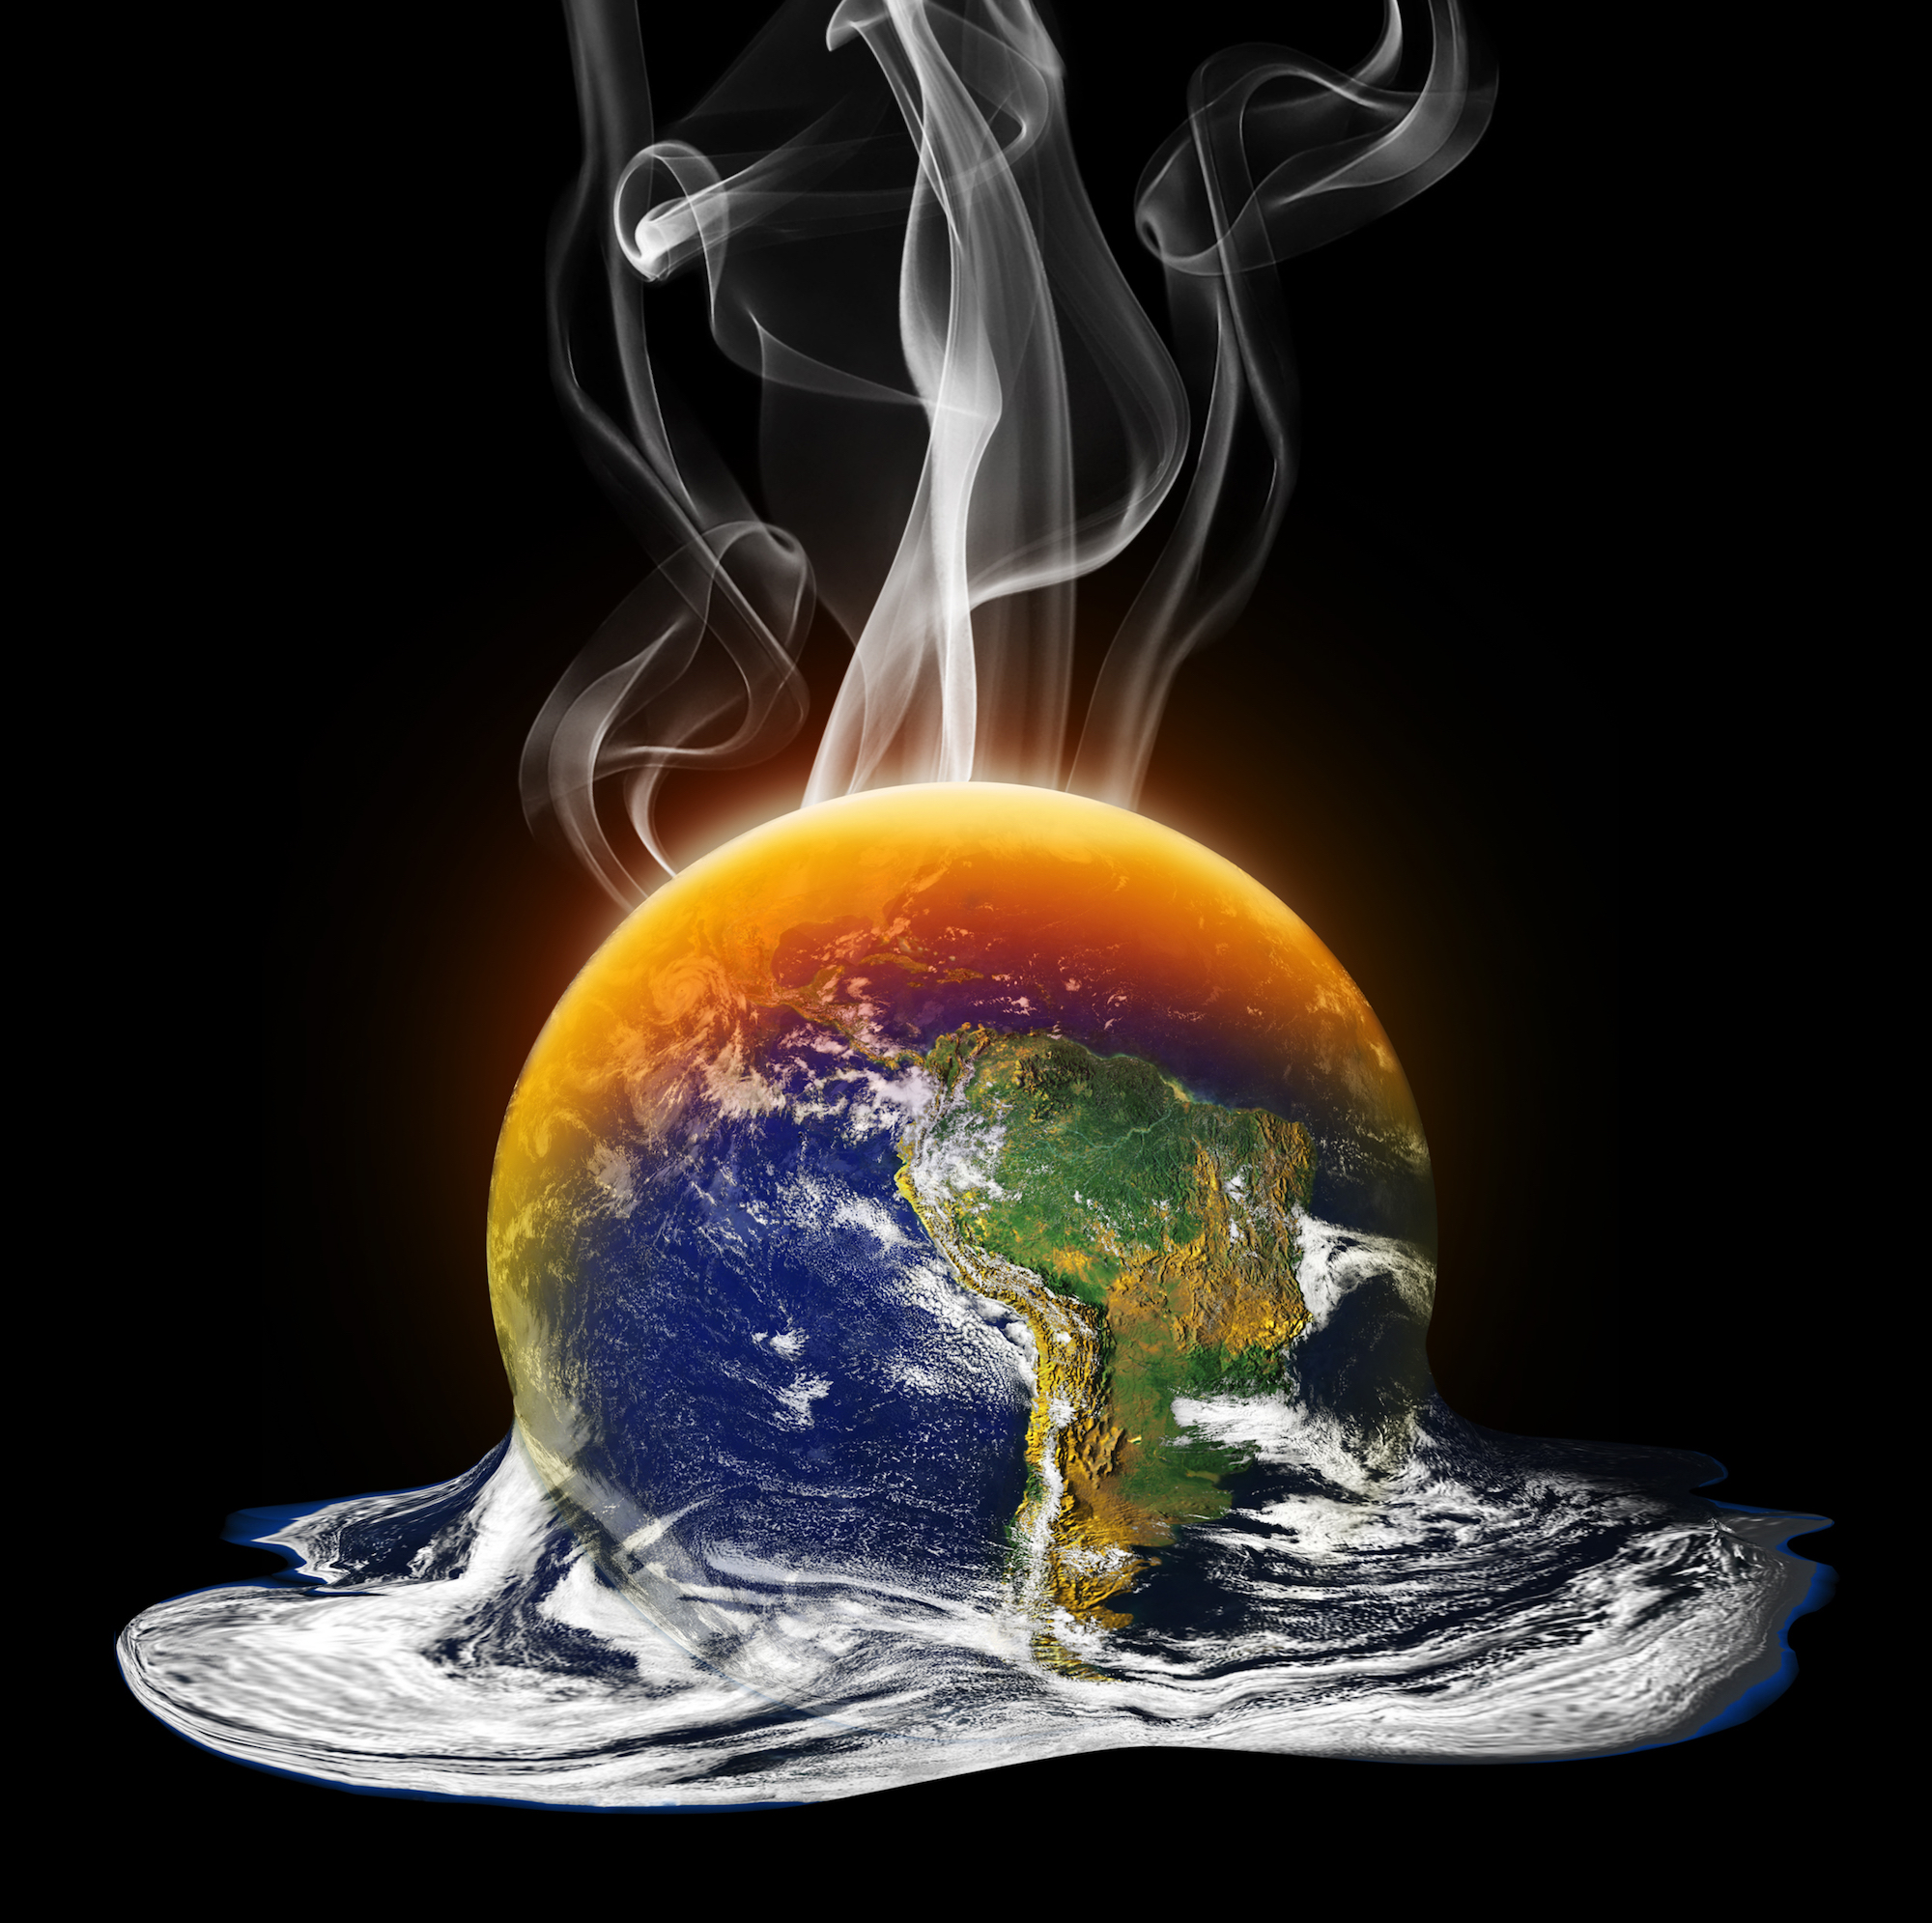 If all greenhouse gas emissions stopped immediately, Earth would continue to warm by two degrees Fahrenheit by 2100.